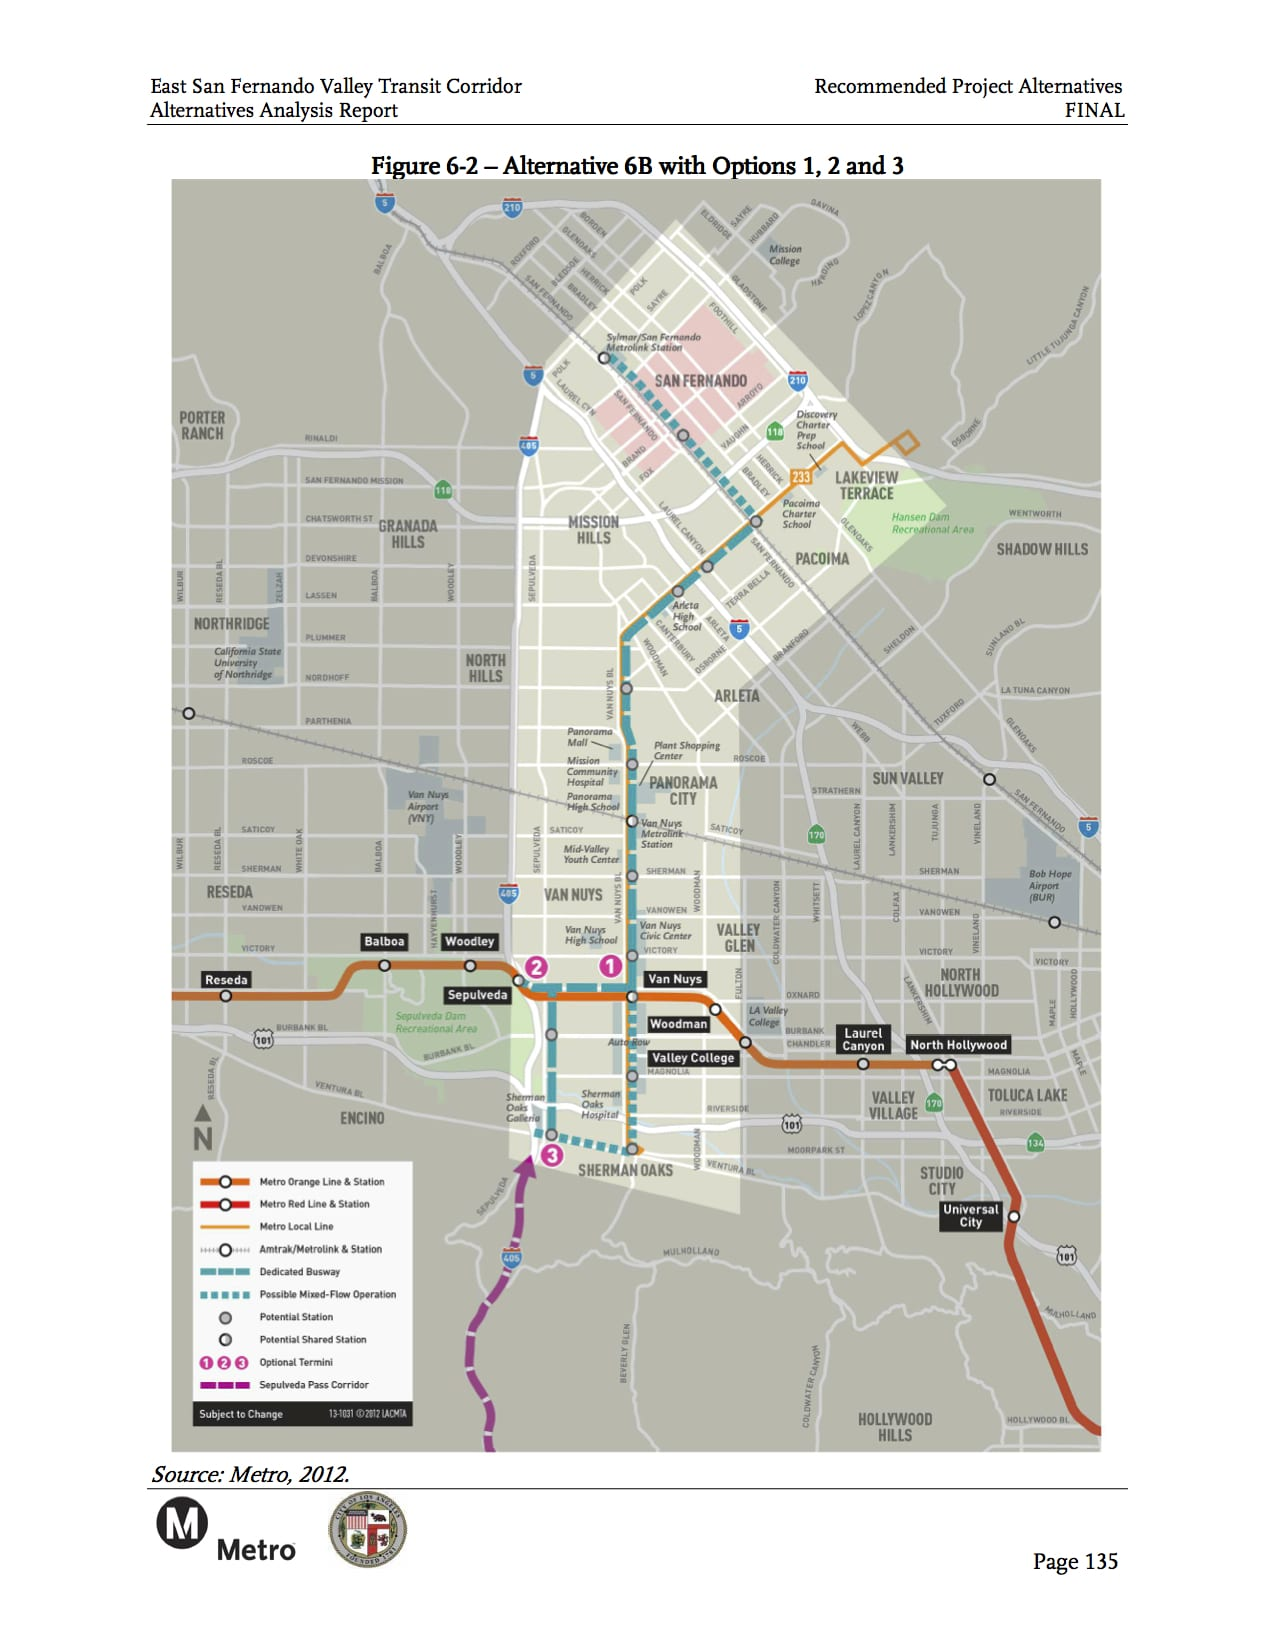 The bus rapid transit alternative recommended for further study for the Eastern San Fernando Valley Transit Corridor. Click above to see larger.